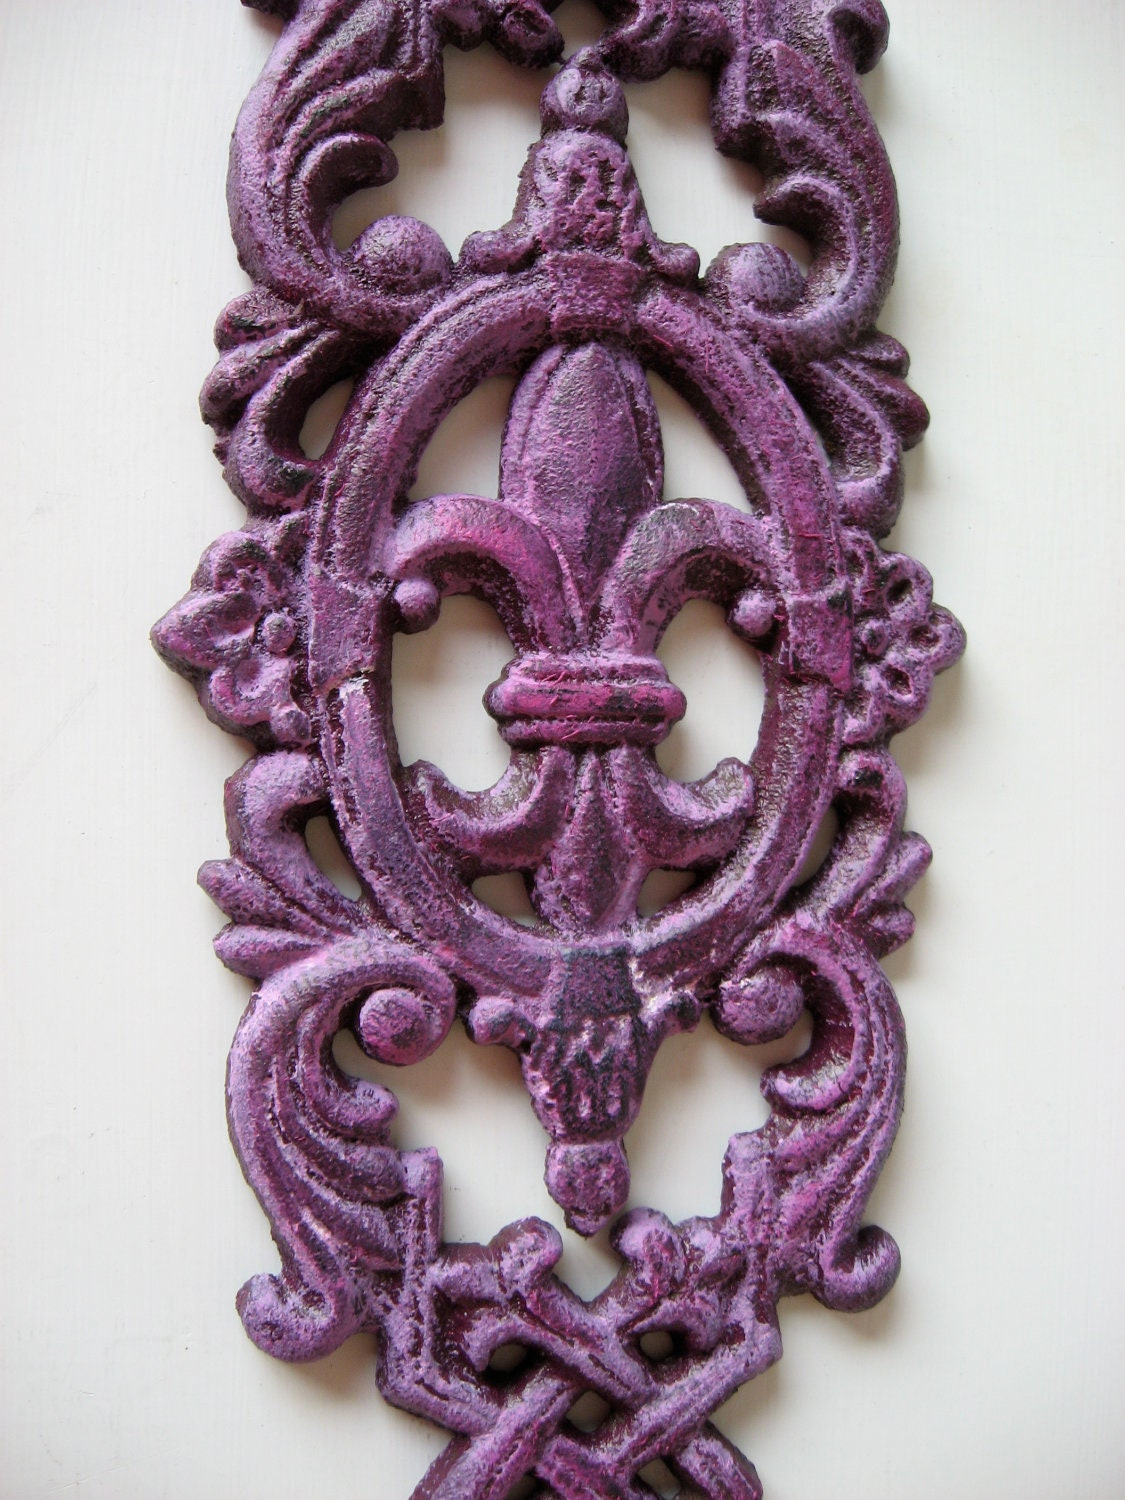 Popular items for cast iron garden on Etsy